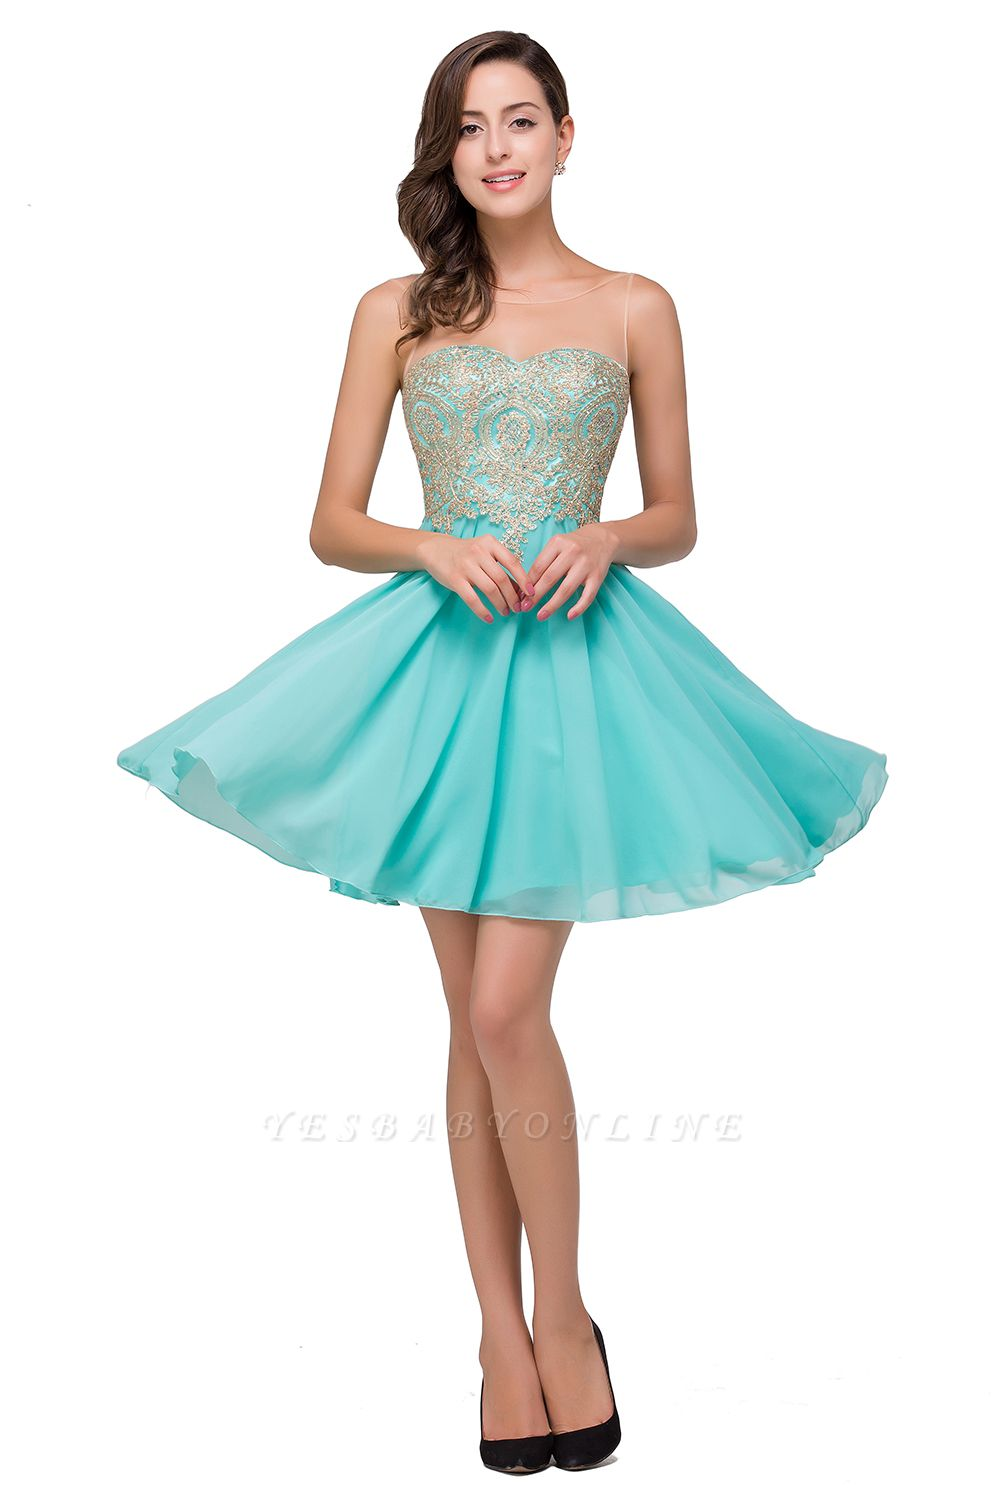 A-line Sleeveless Short Chiffon Prom Dresses with Appliques